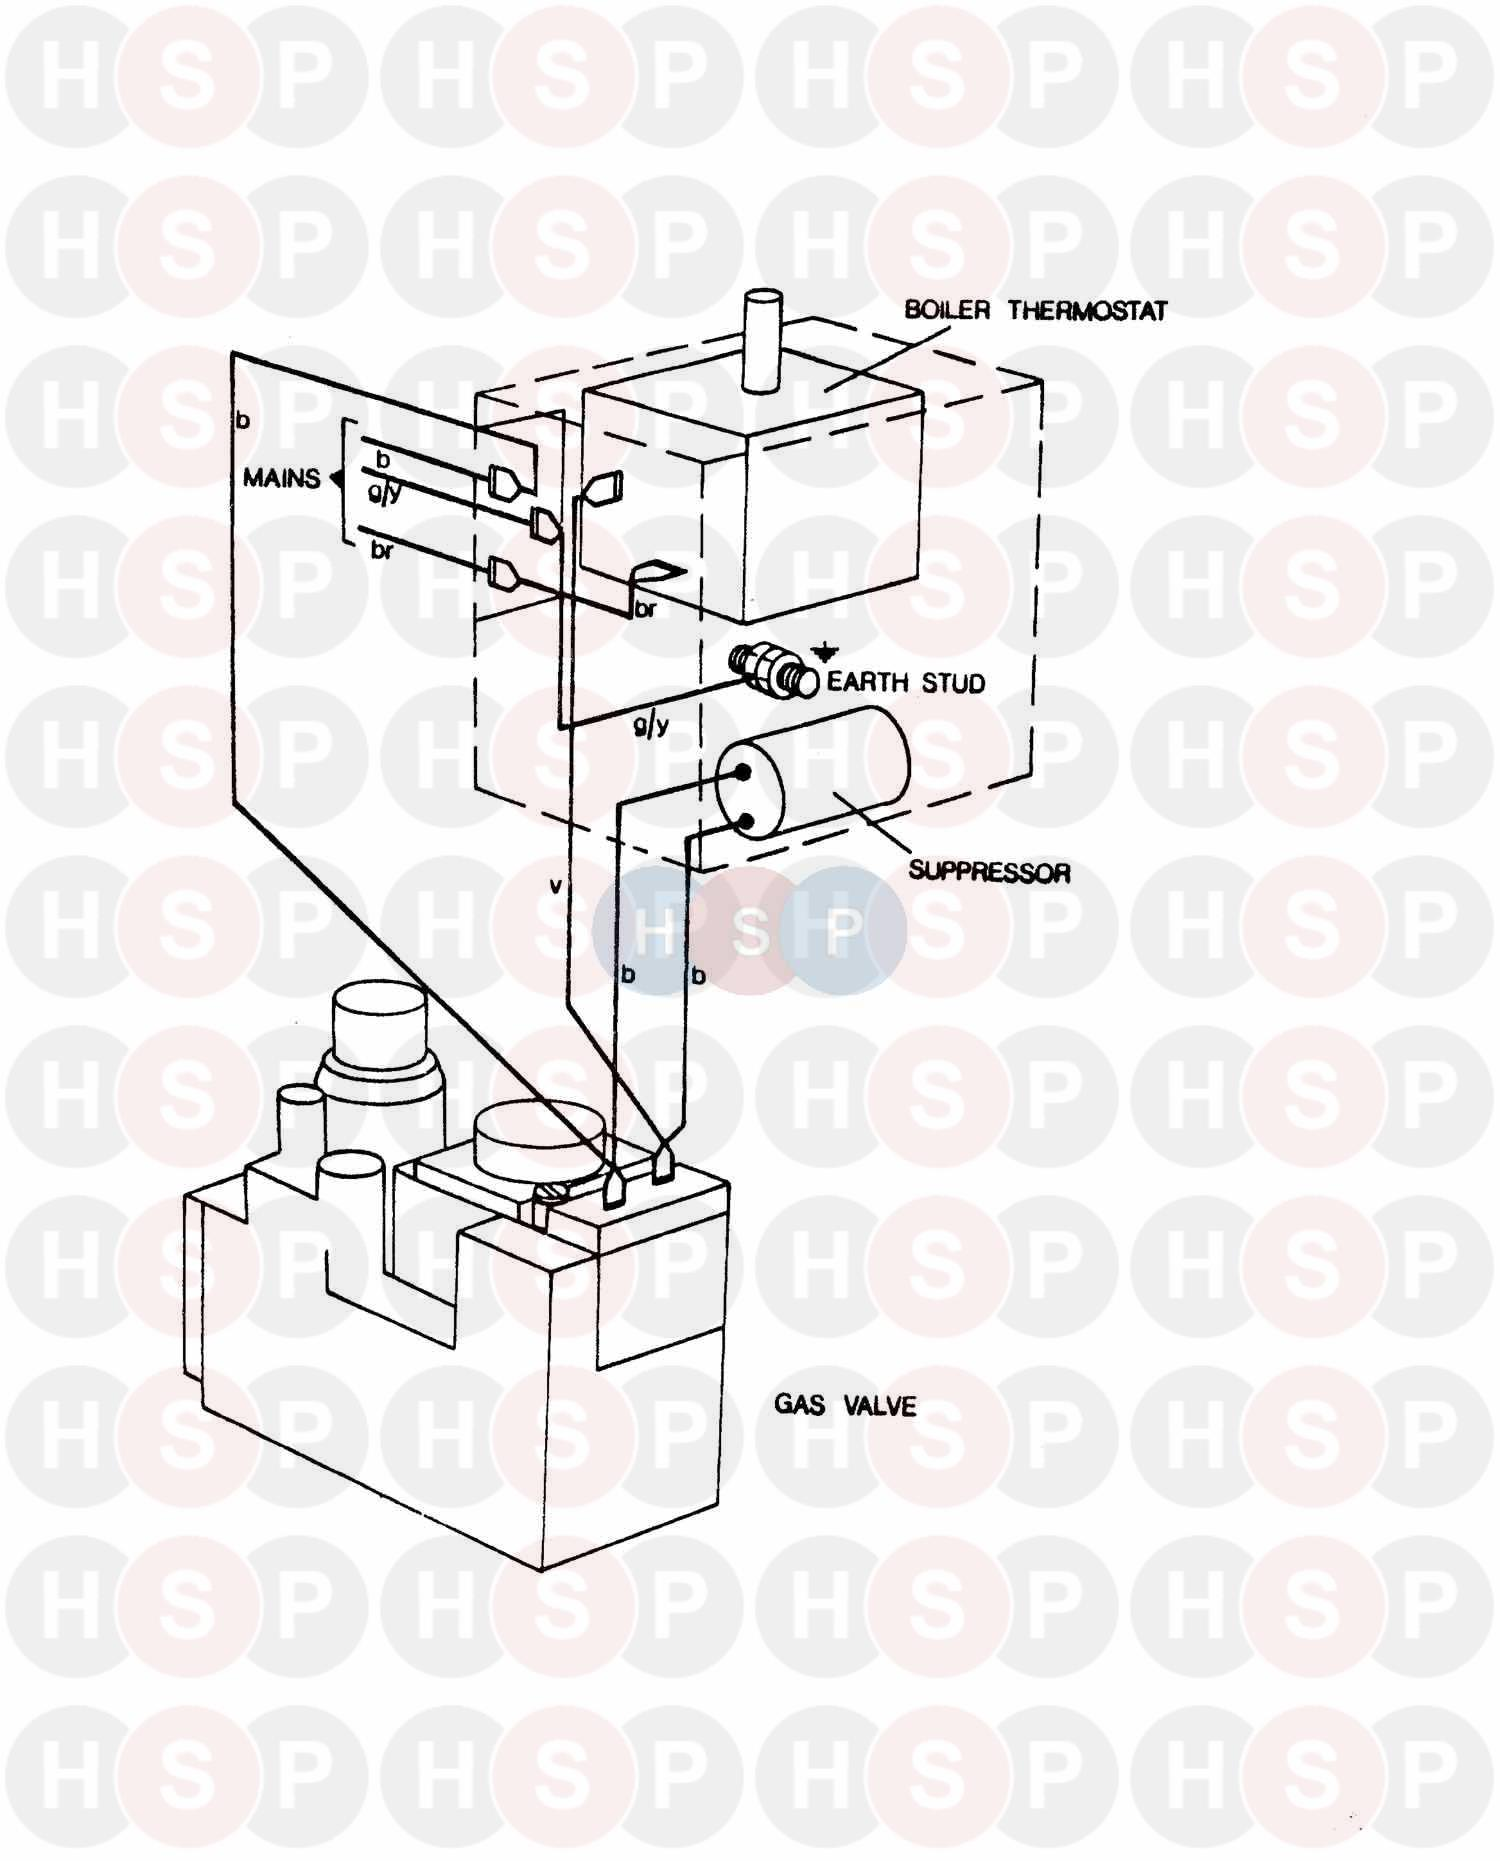 Ideal Concord Wrs 440 Wiring Diagram 1 Heating Spare Parts 4 Click The To Open It On A New Page